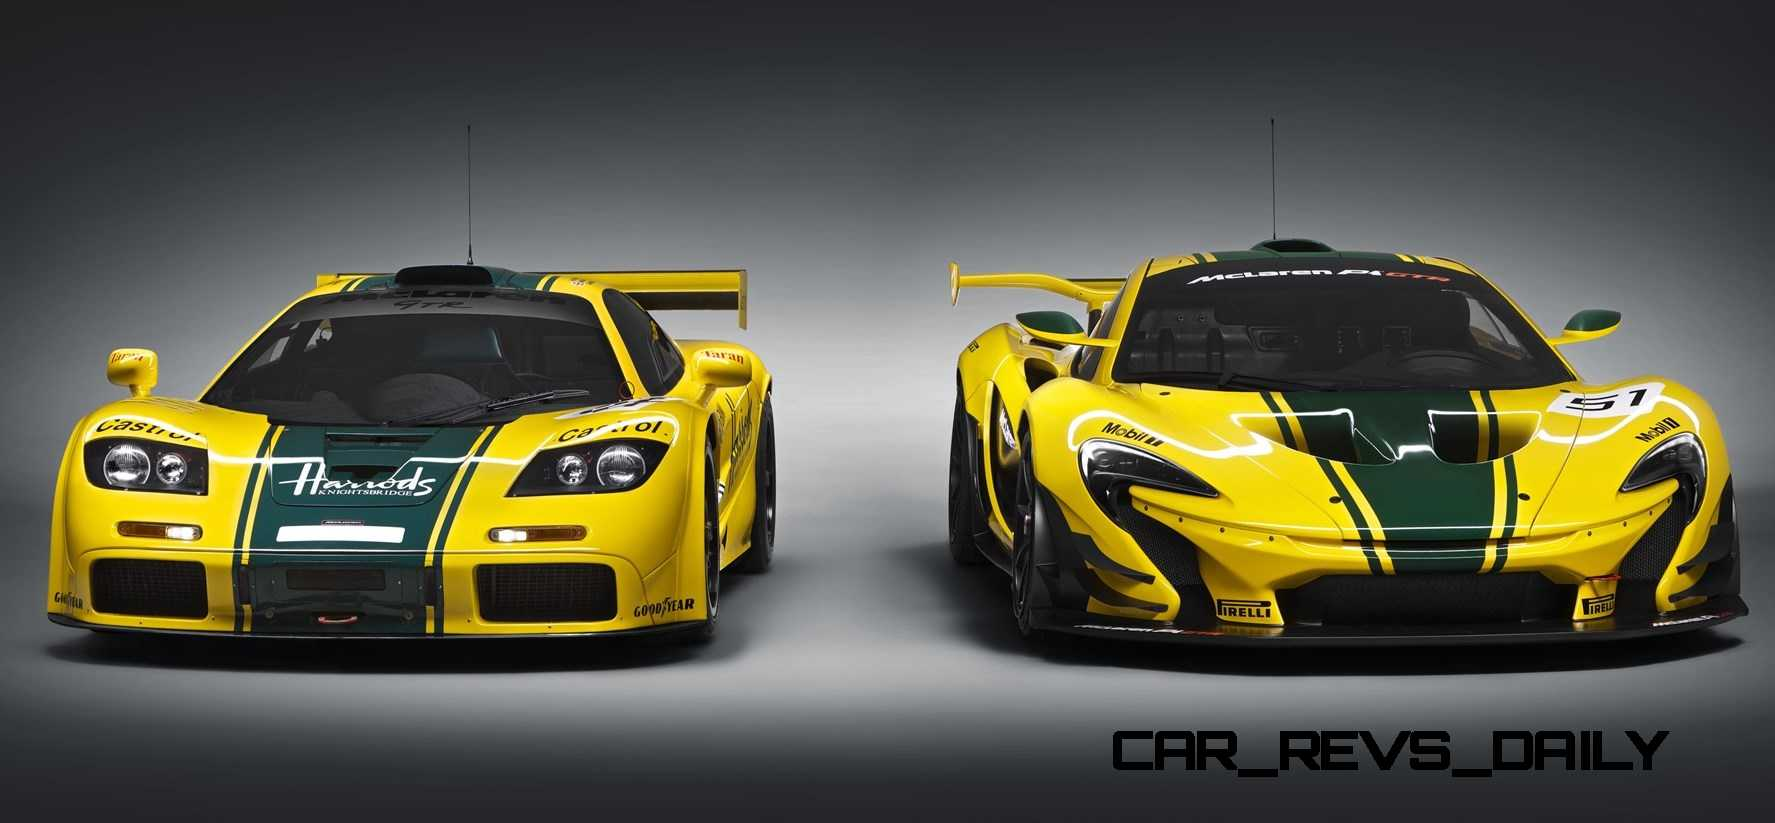 2016 mclaren p1 gtr yellow. Black Bedroom Furniture Sets. Home Design Ideas